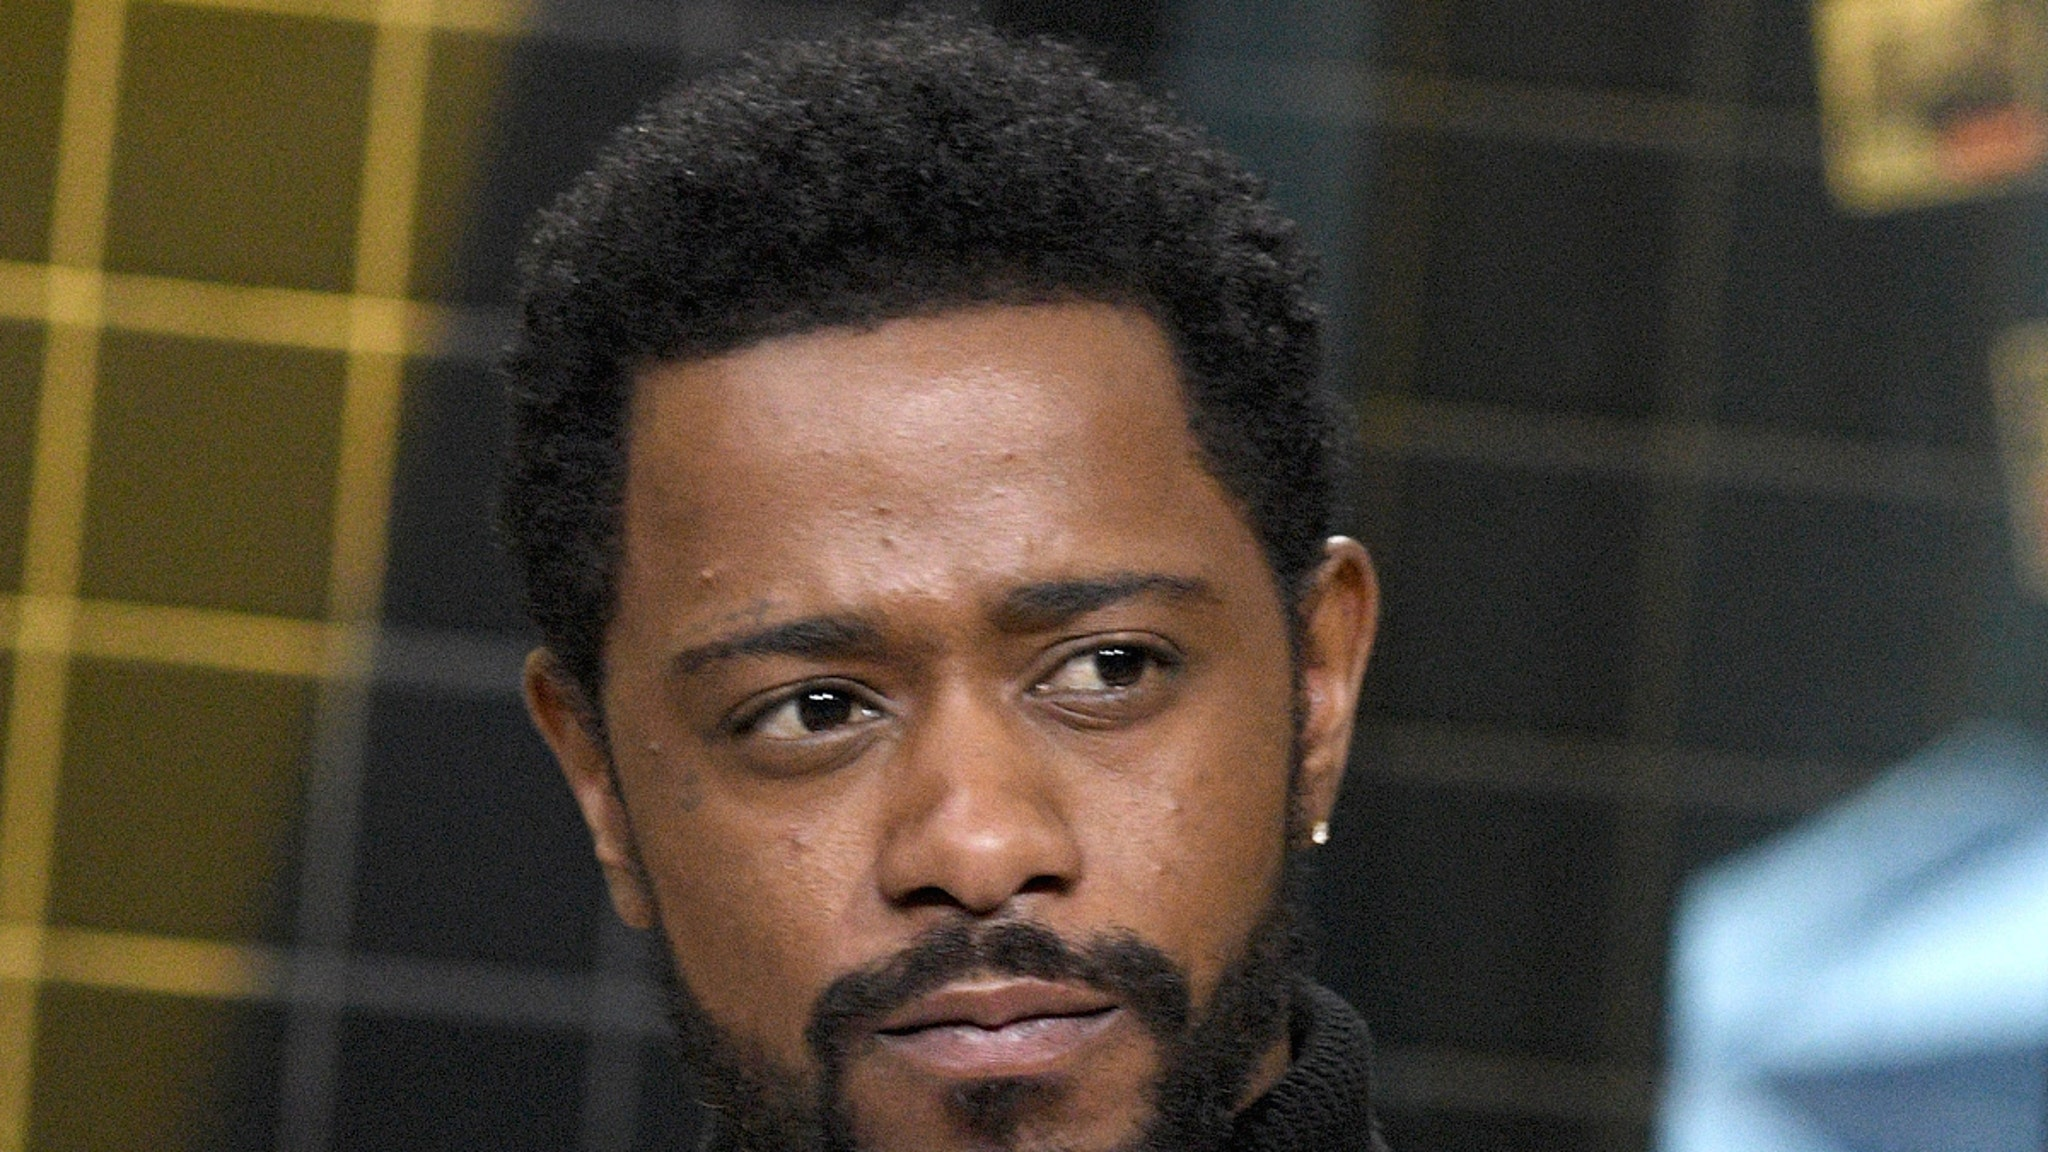 LaKeith Stanfield Called Out for Moderating Anti-Semitic Clubhouse Chat - TMZ